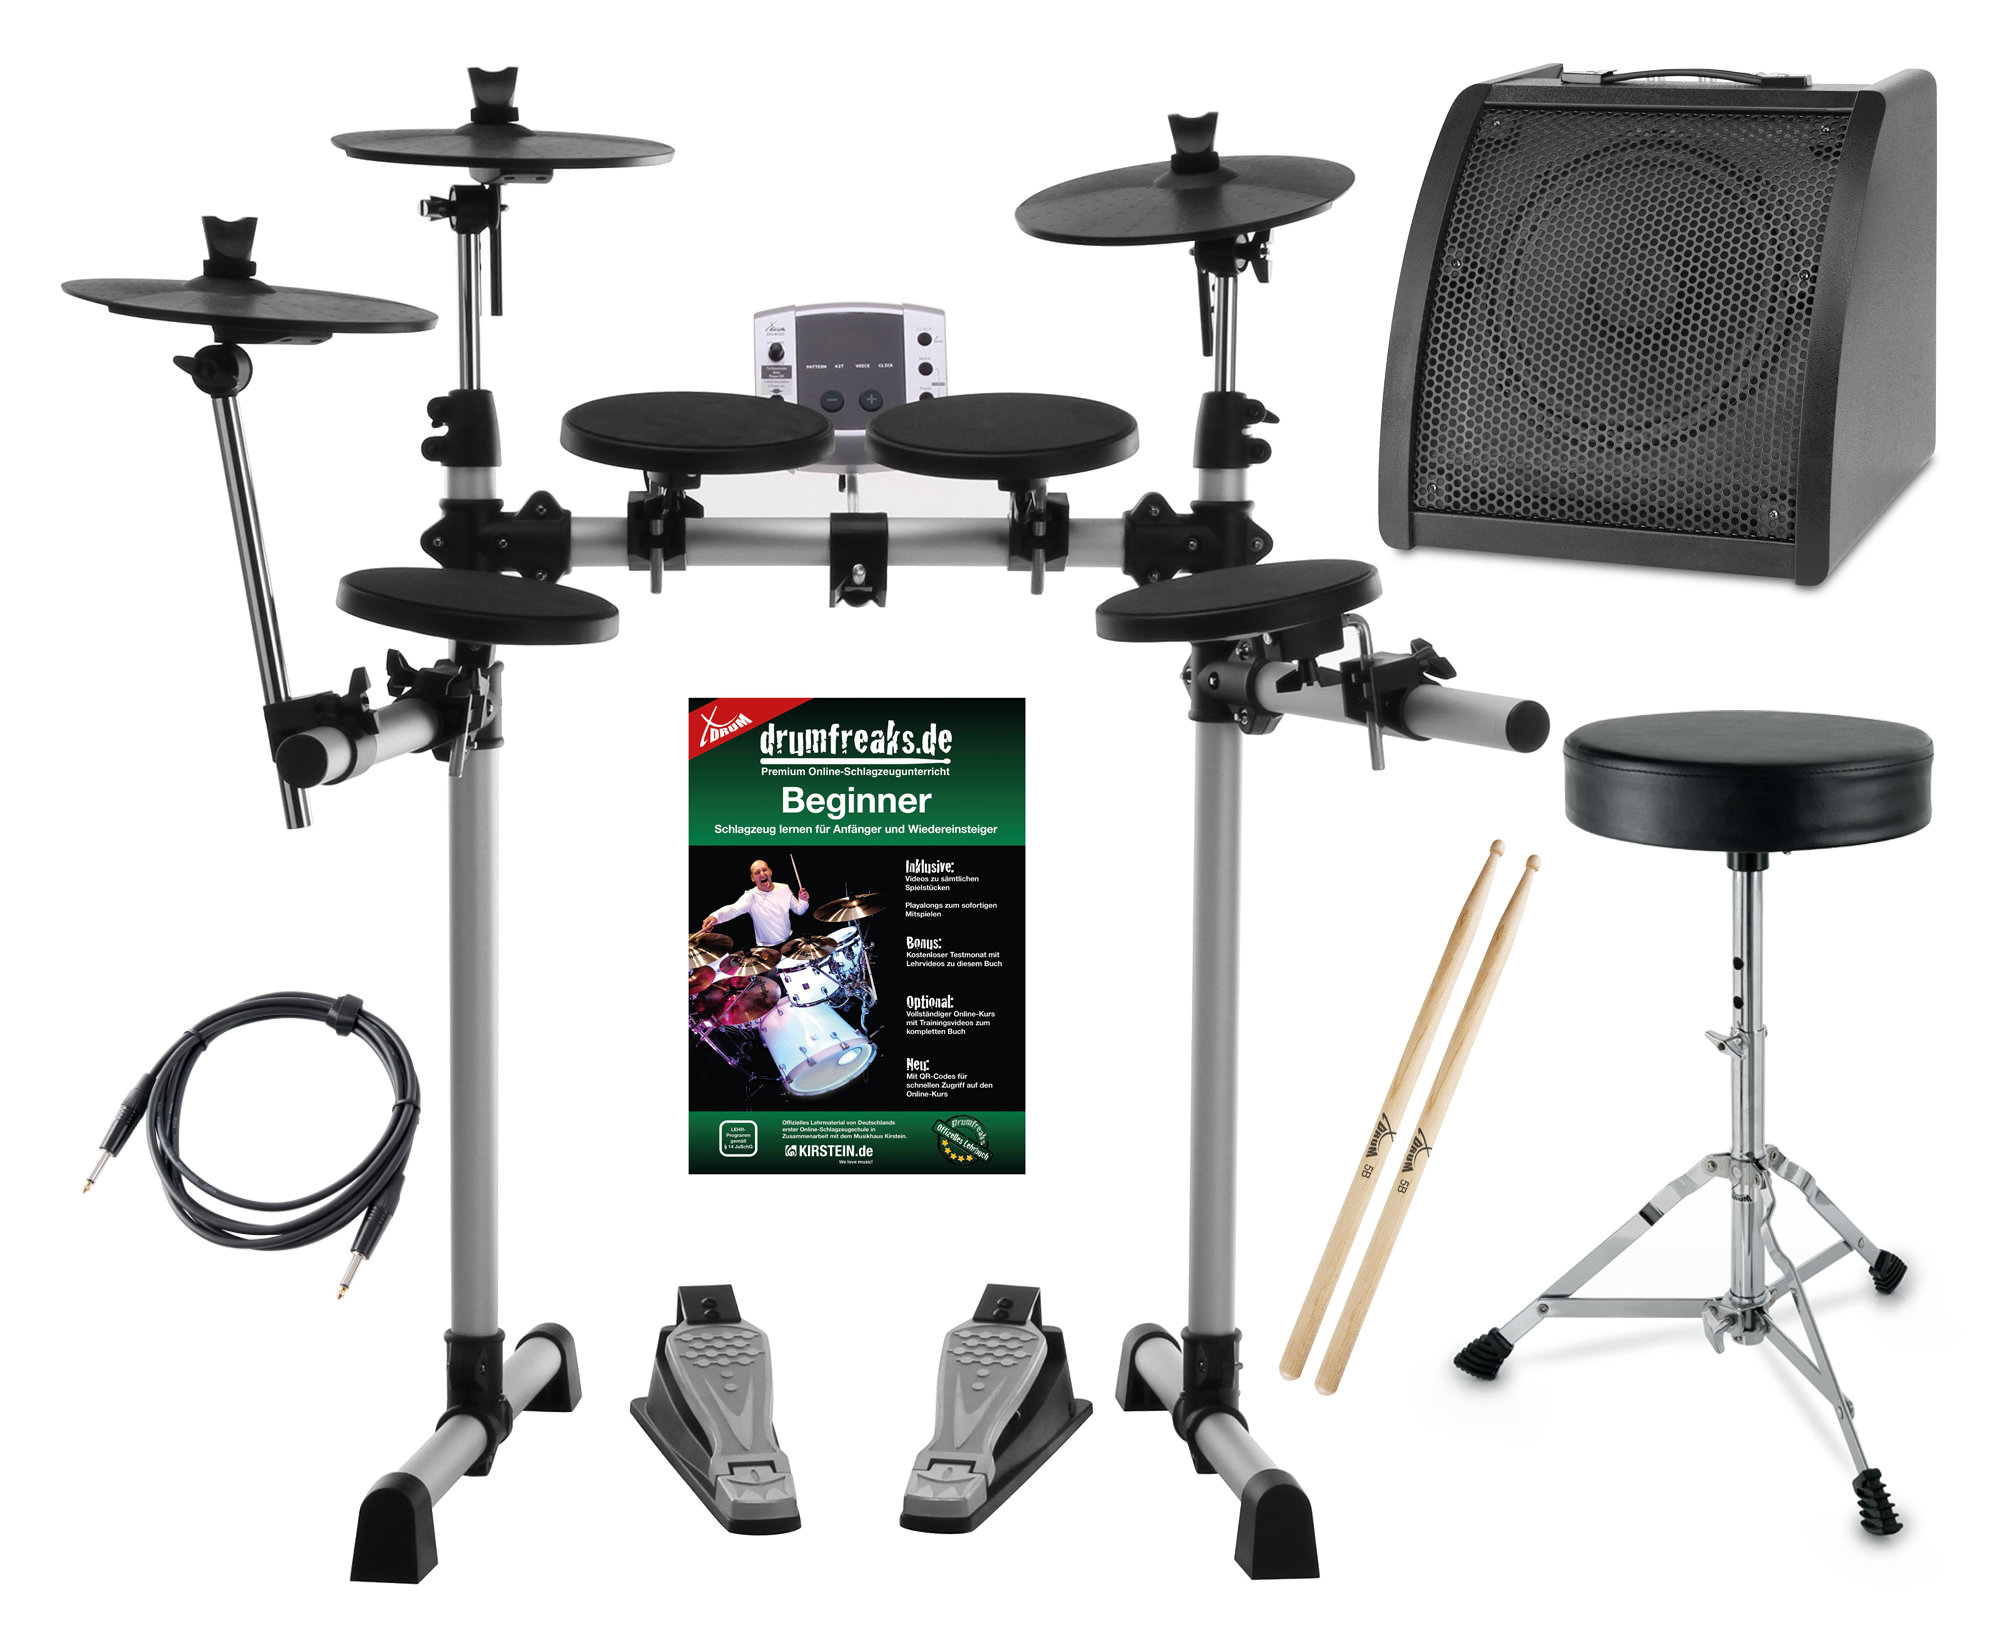 Xdrum Dd 400 Electronic Drum Set Complete With Cable Drum